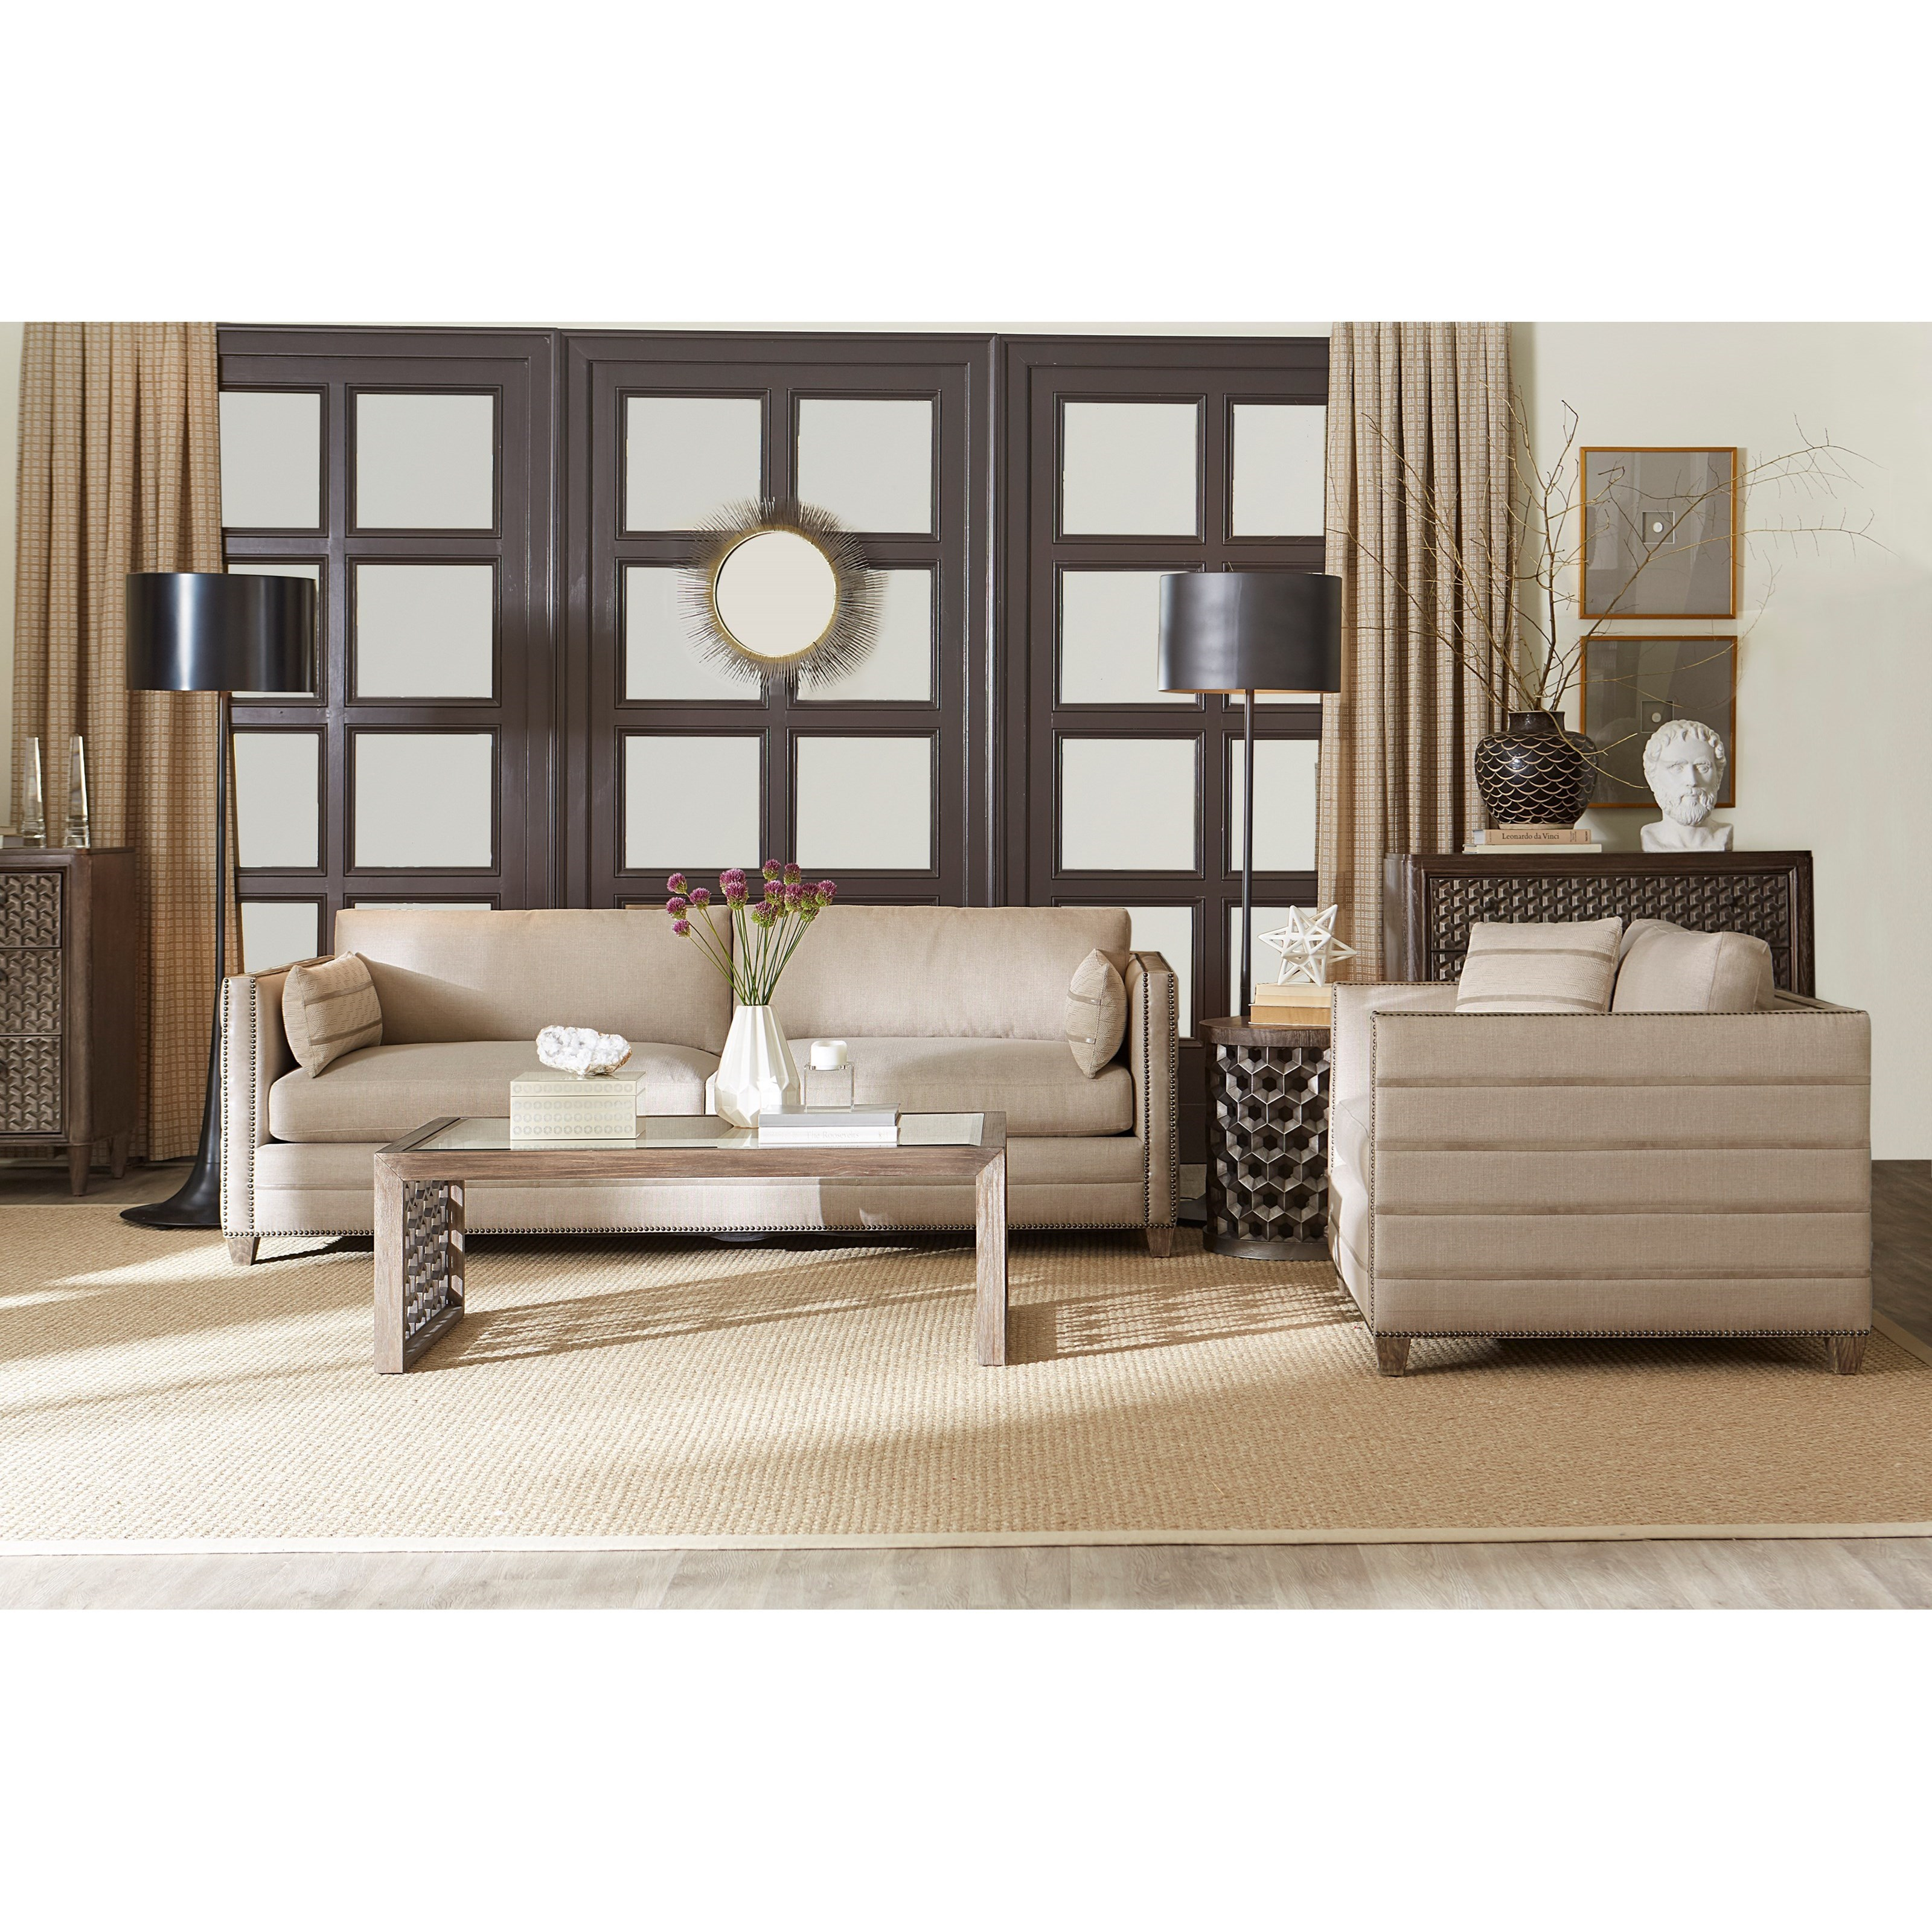 Superbe A.R.T. Furniture Inc Allister Greige Stationary Living Room Group